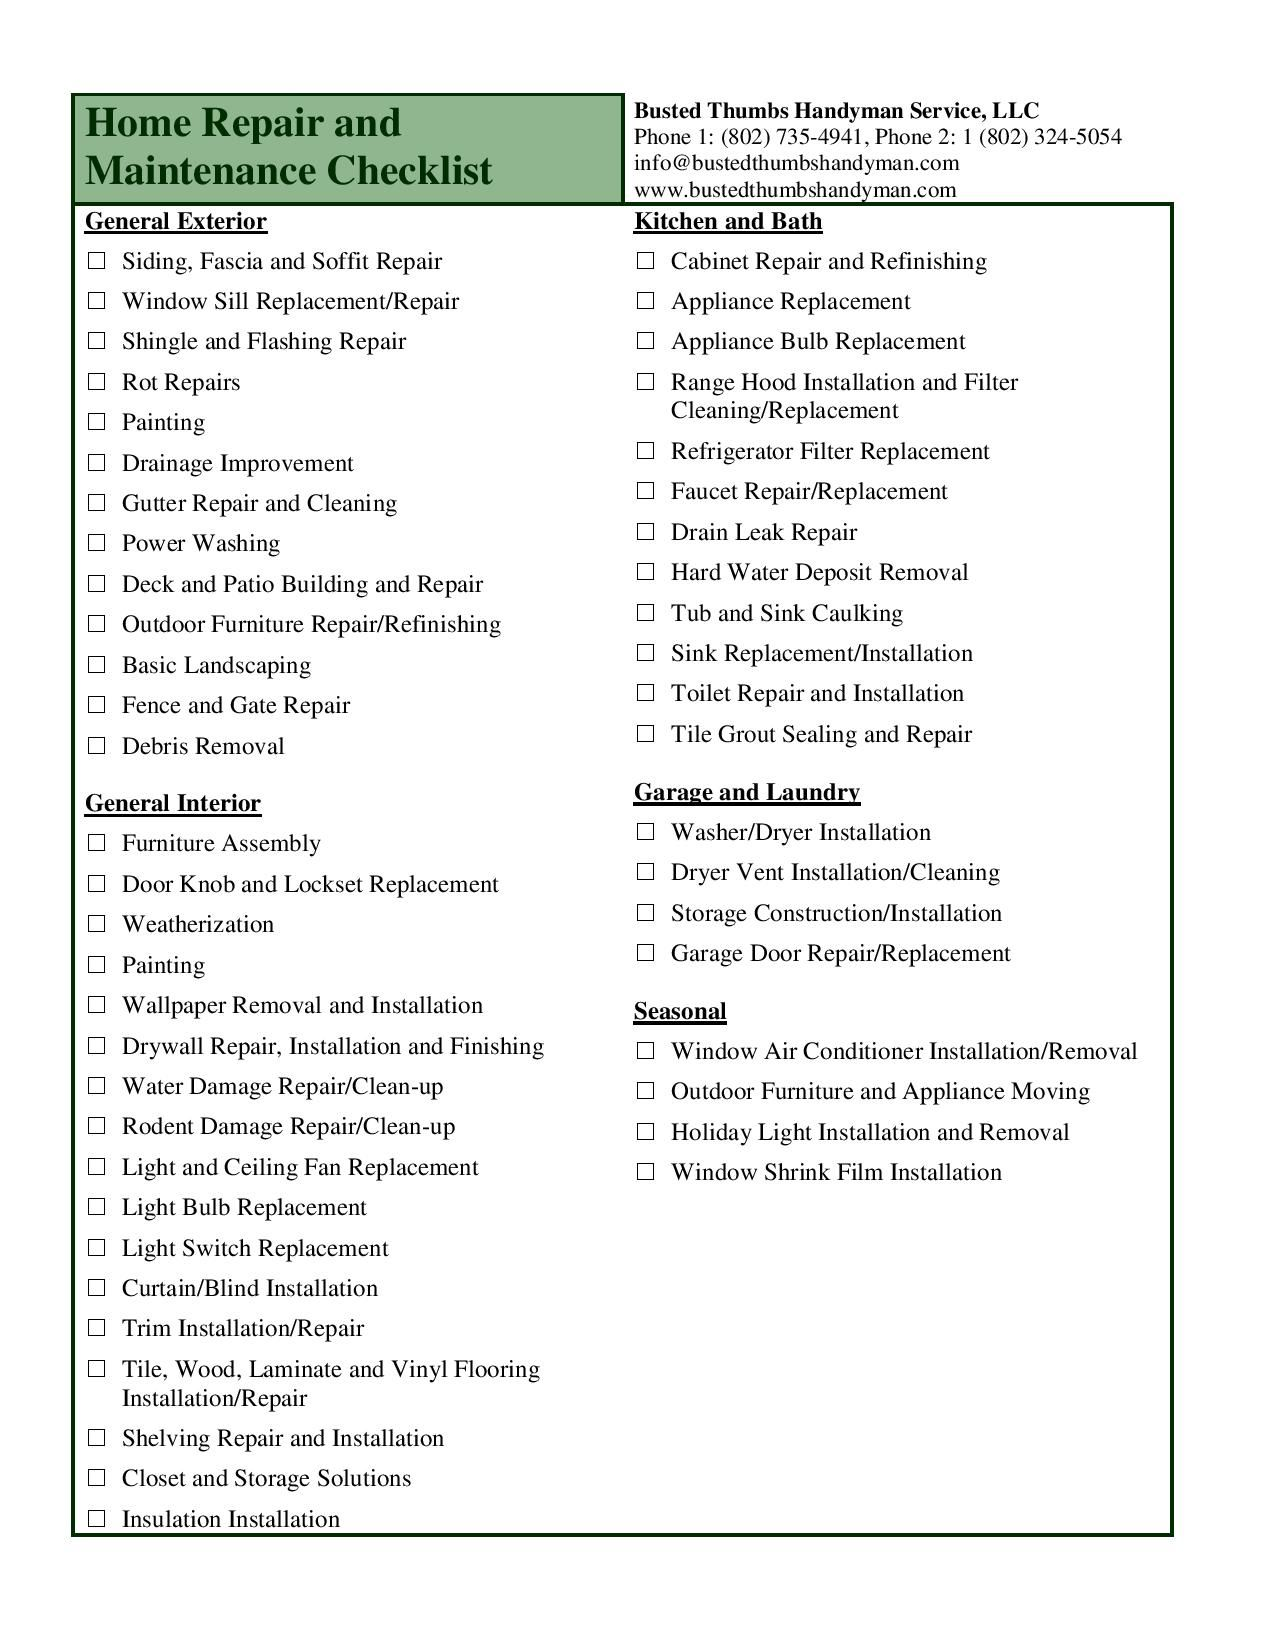 Sample Project Checklist Template. New Cumberland Pennsylvania ...